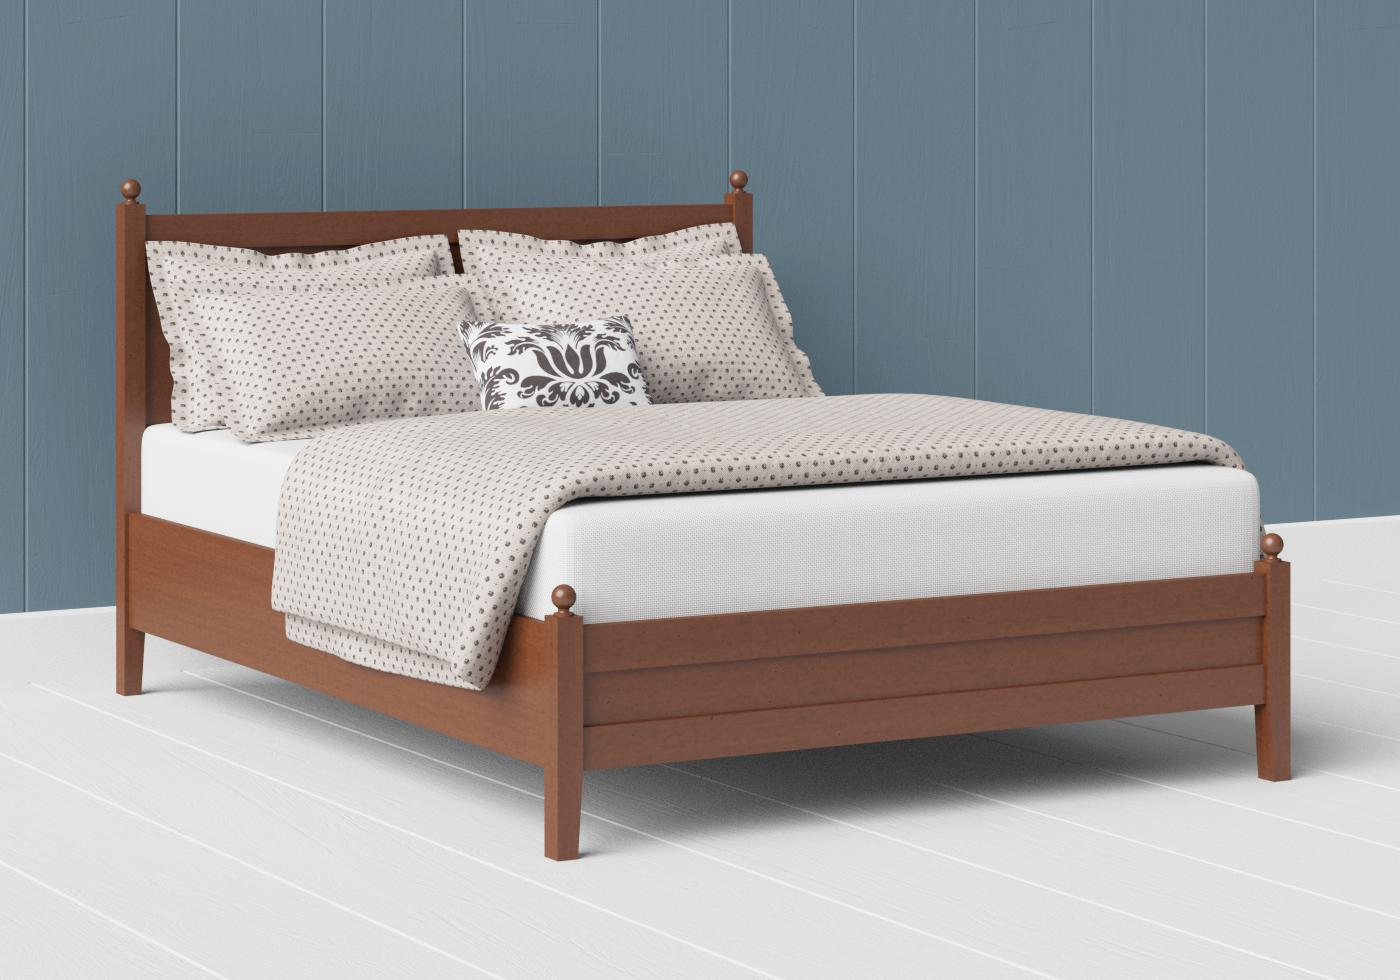 Marbella low footend wood bed in a dark cherry finish